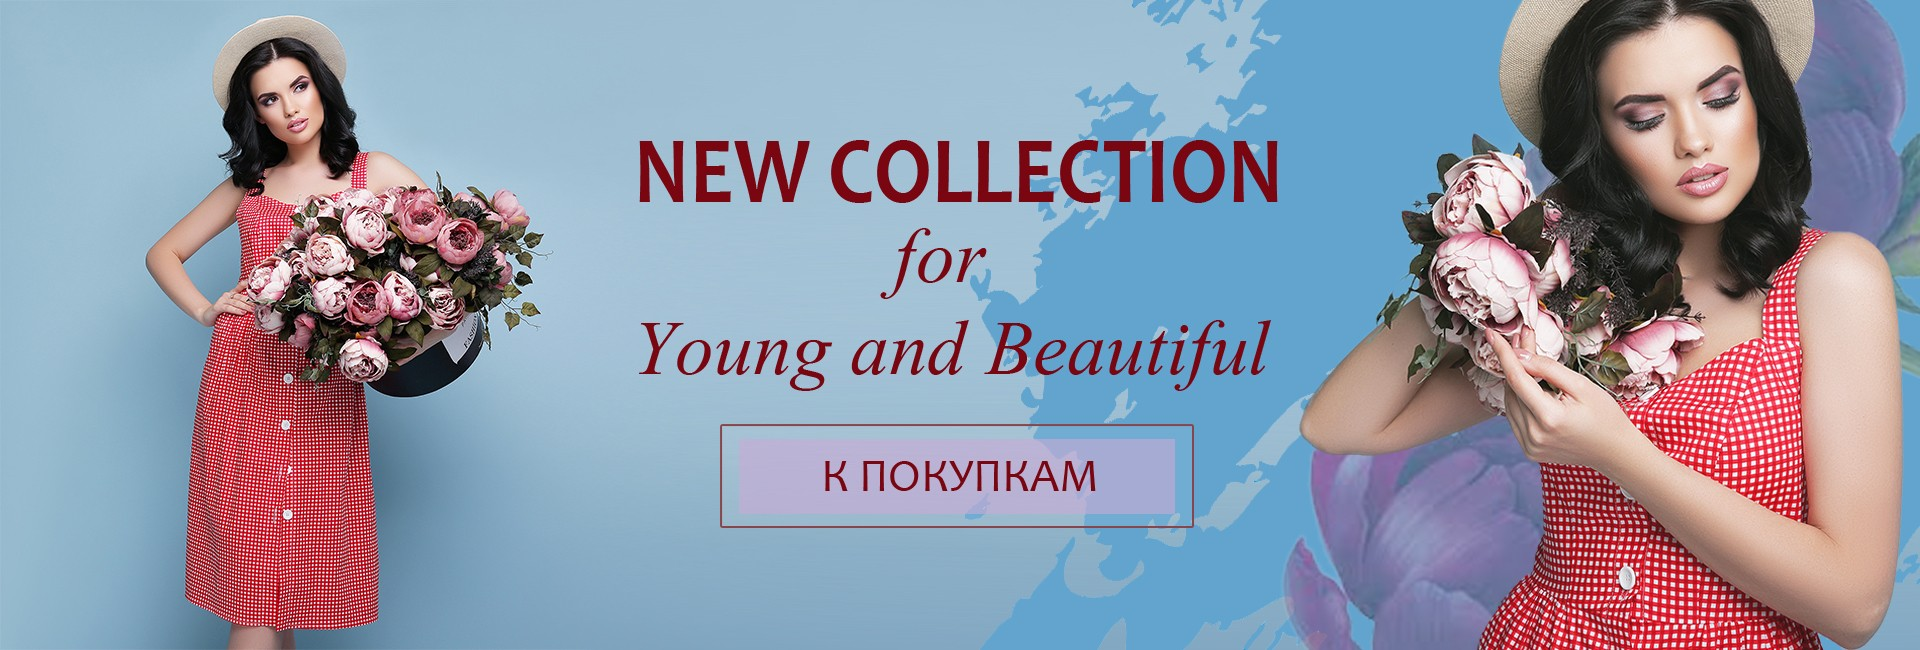 NEW COLLECTIN for young and beautiful